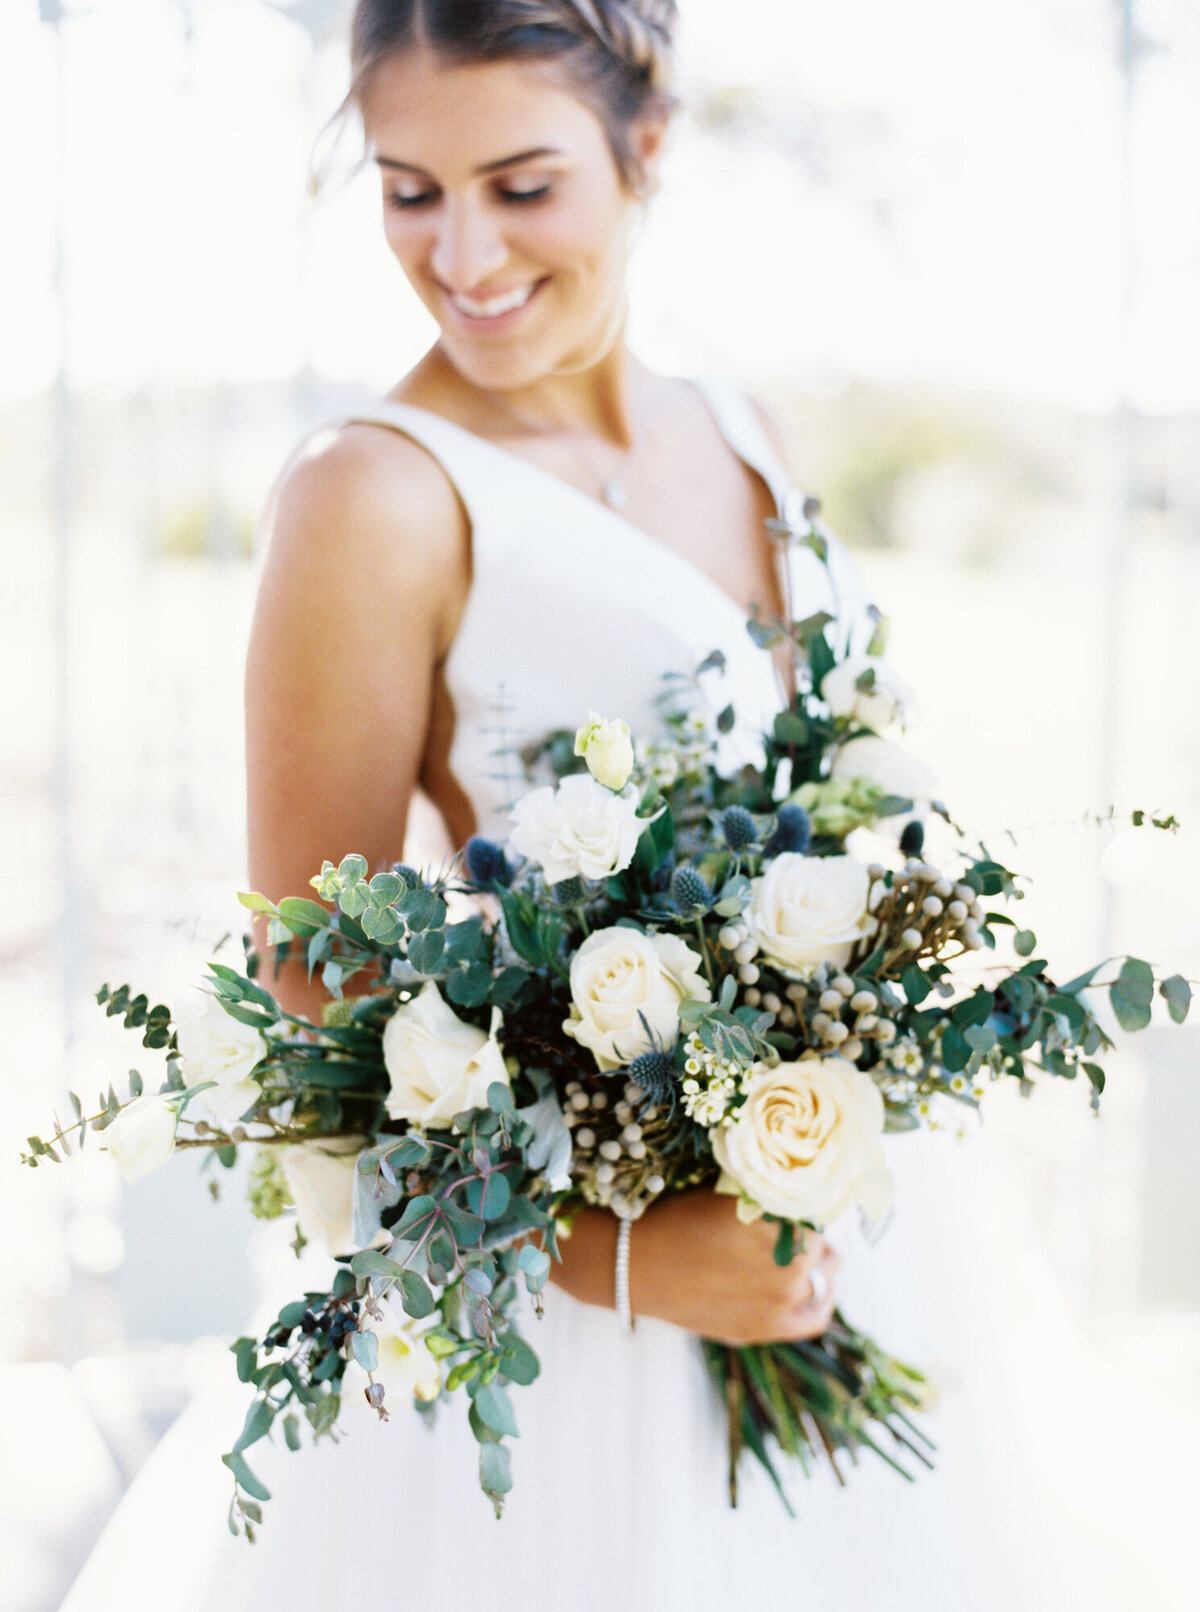 Bride holding white and cream bouquet